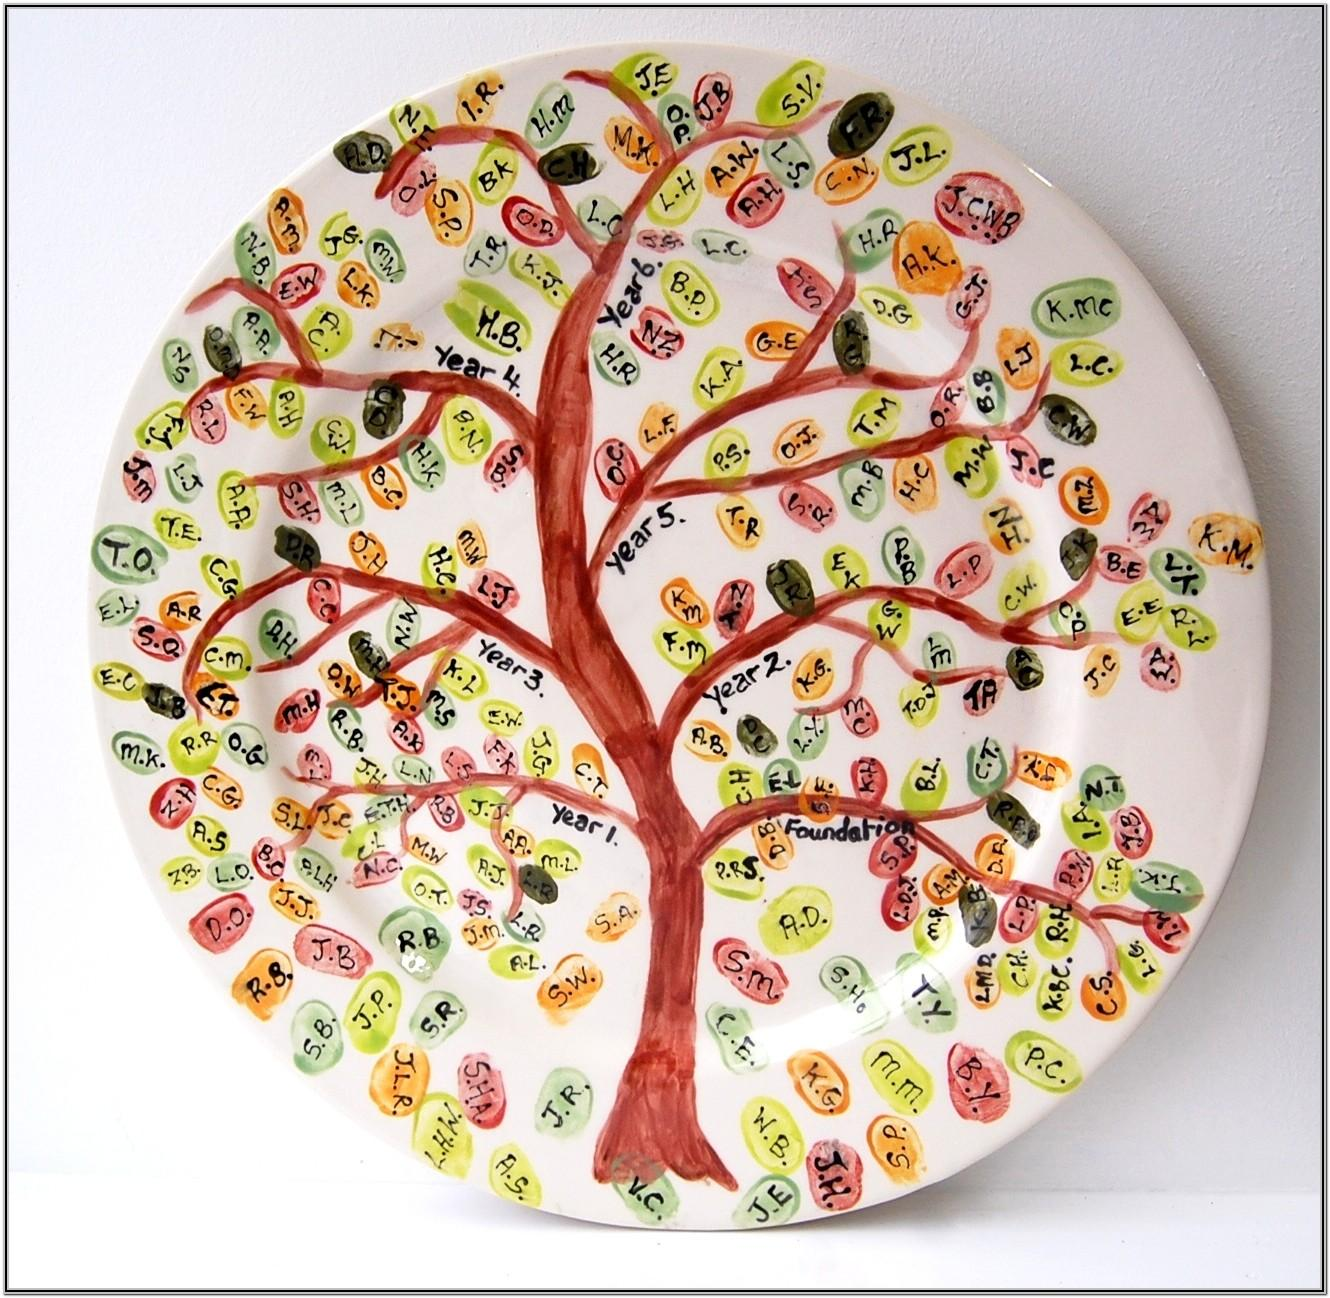 Pottery Painting Ideas For Plates